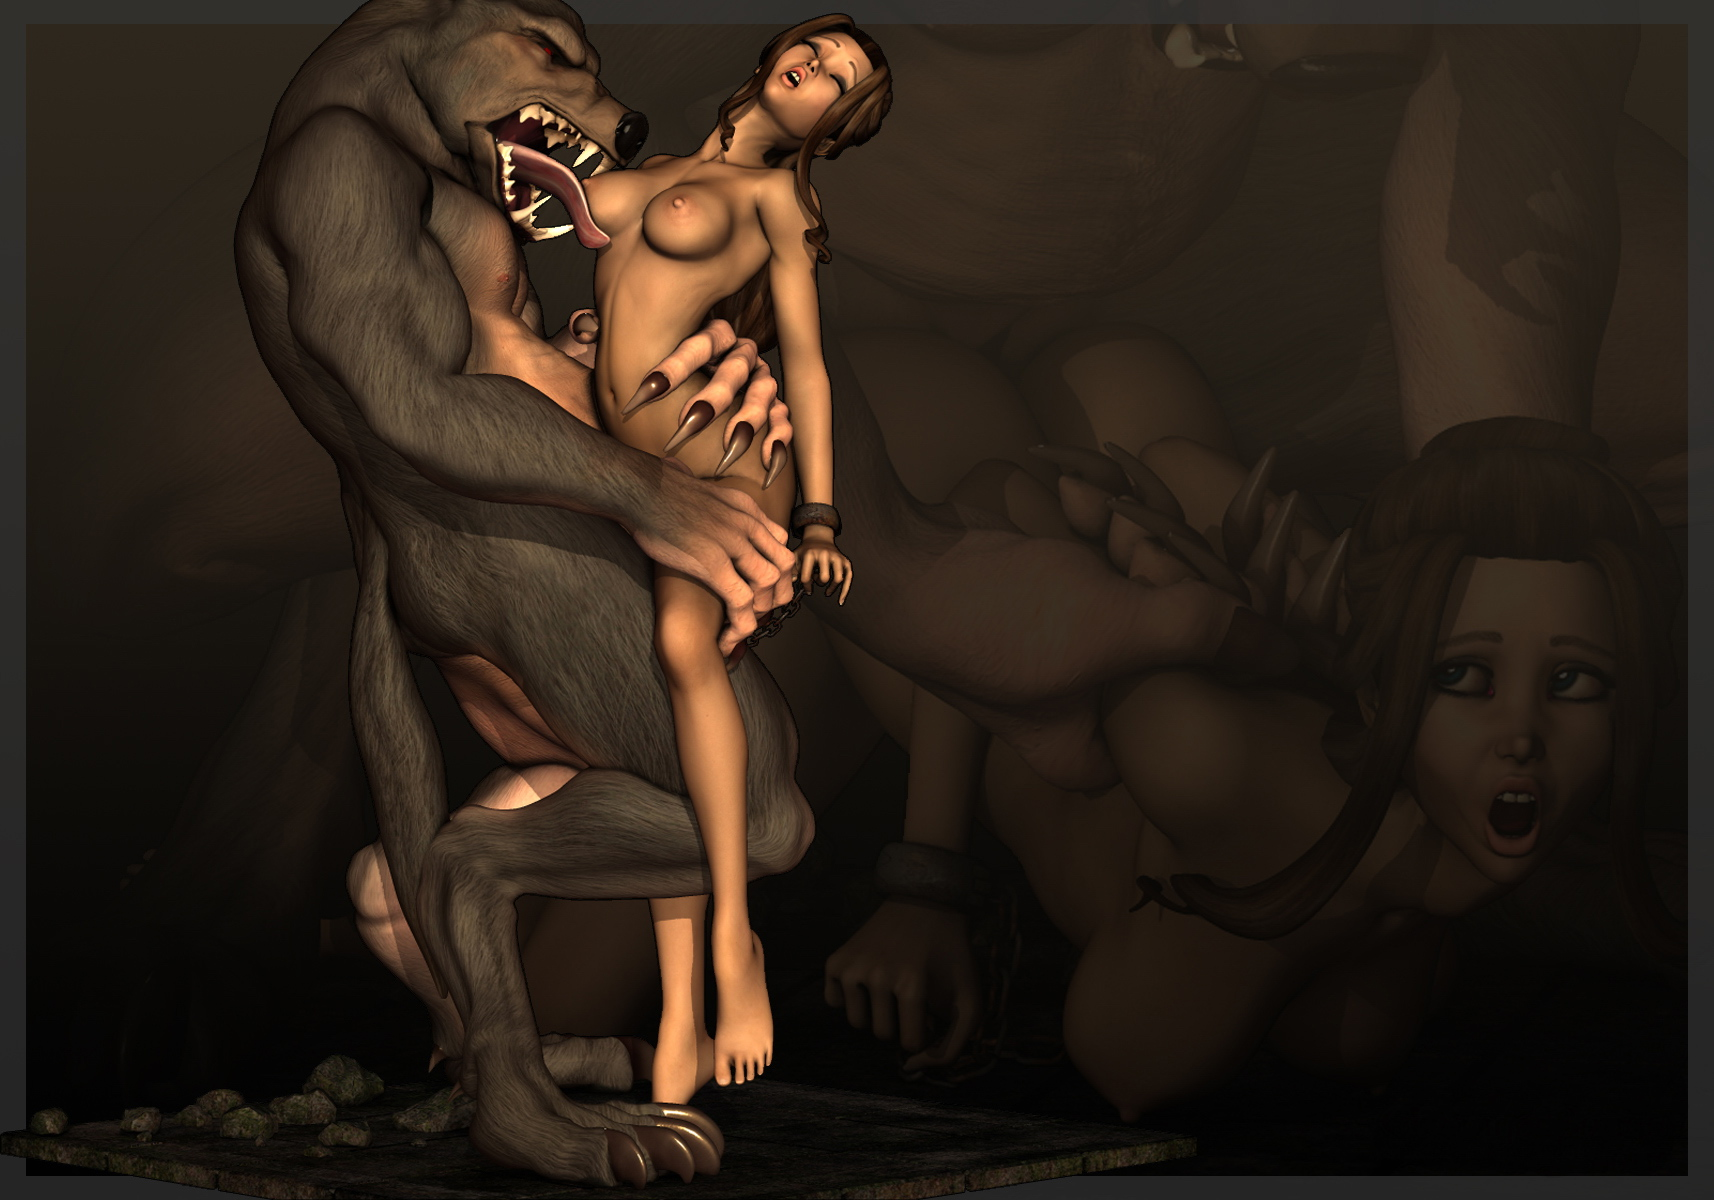 3d werewolf sex girl porn videos